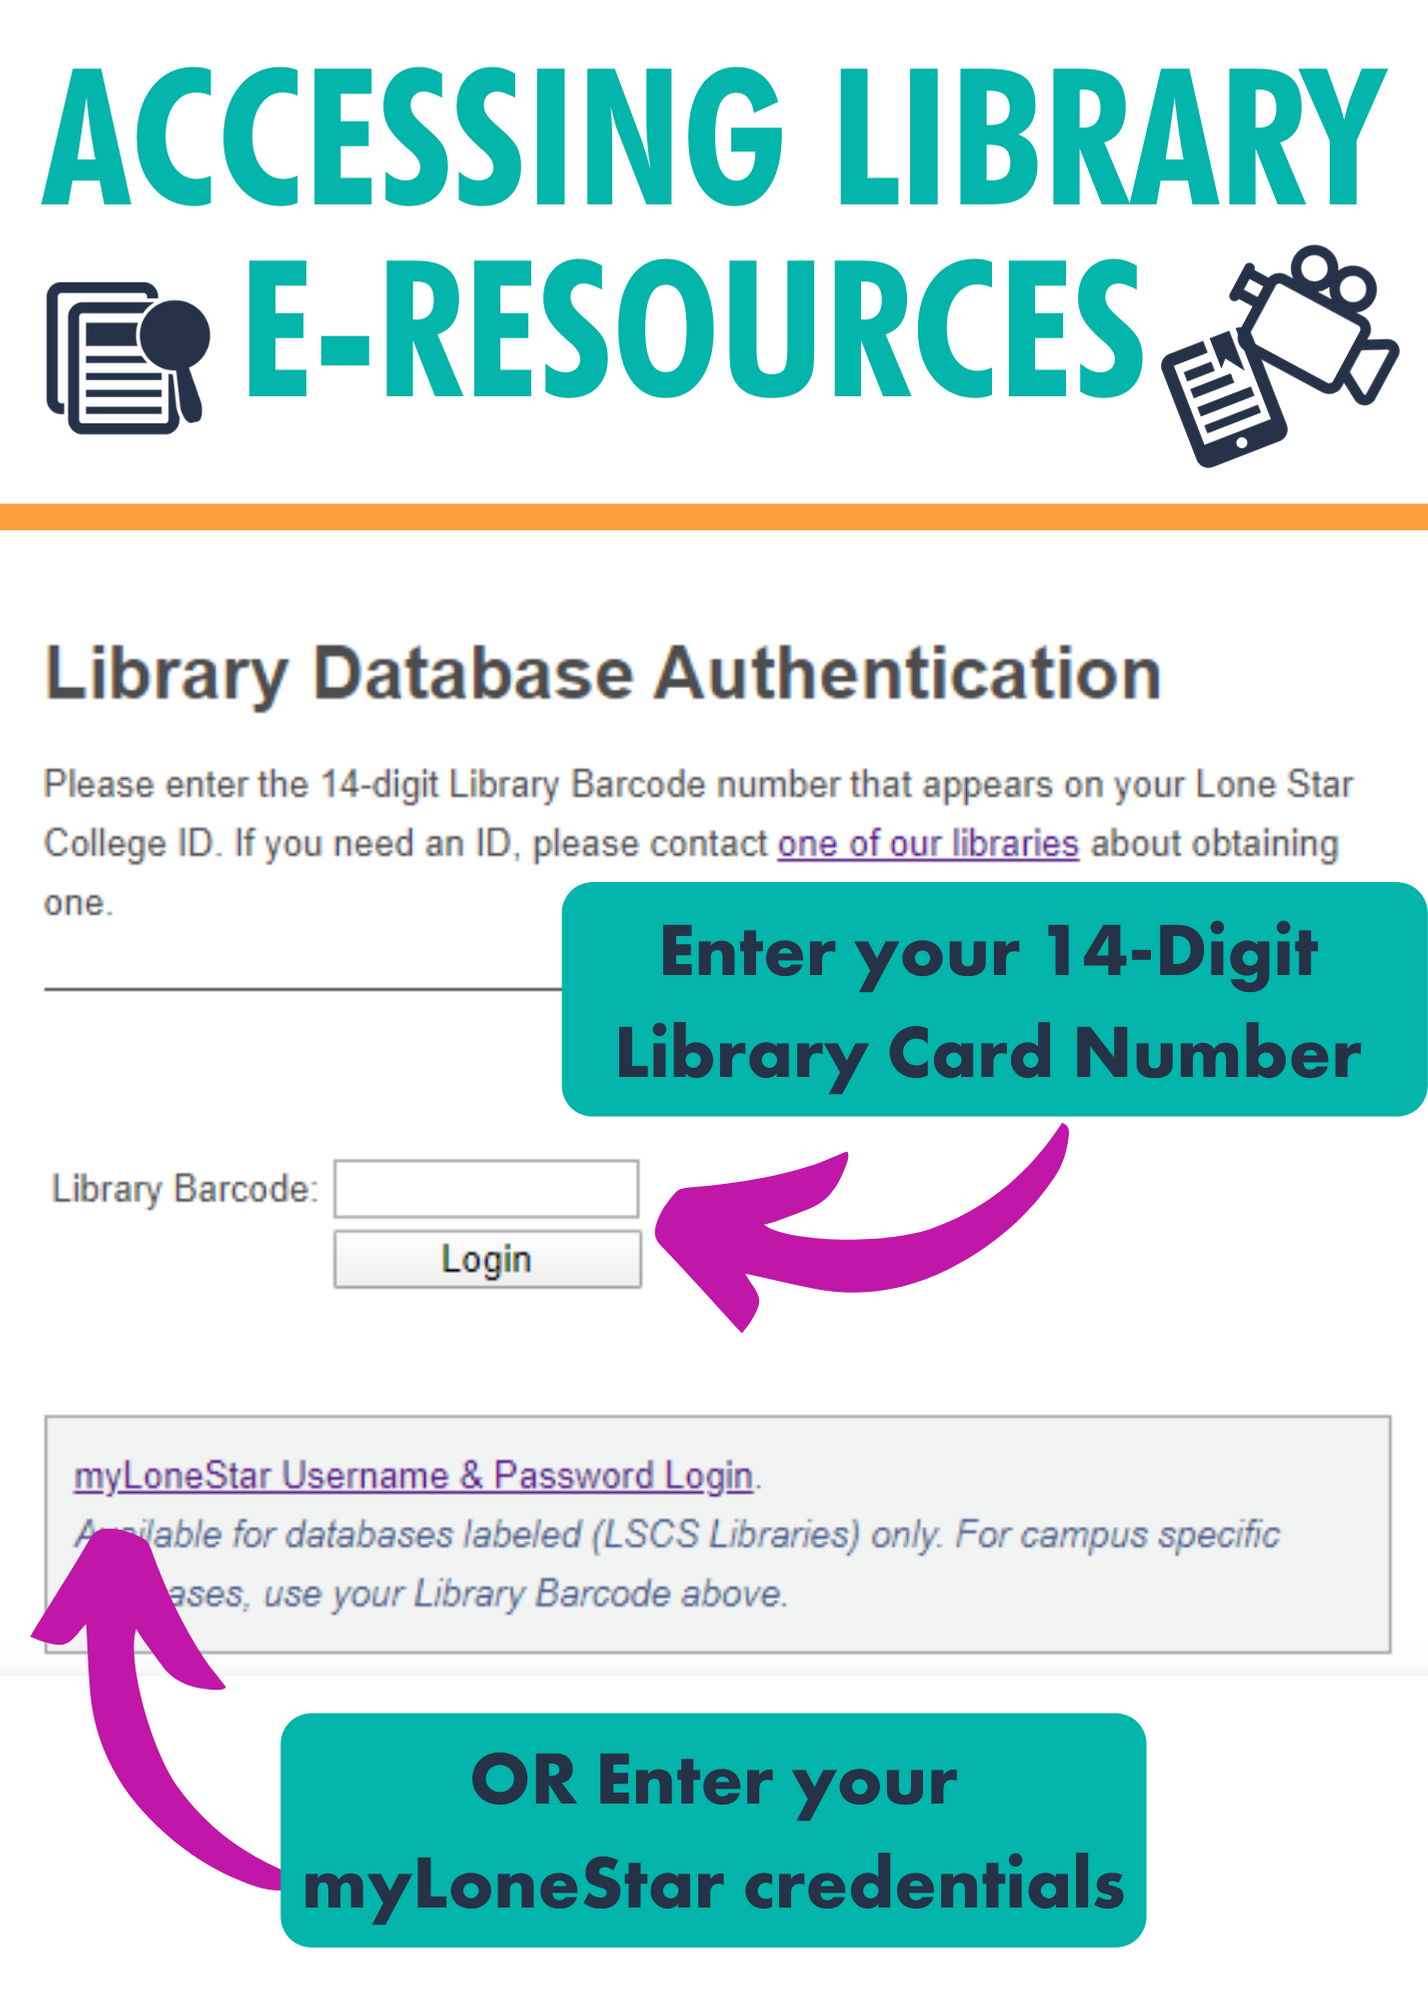 Photo of PDF linked below on how to access e-resources.